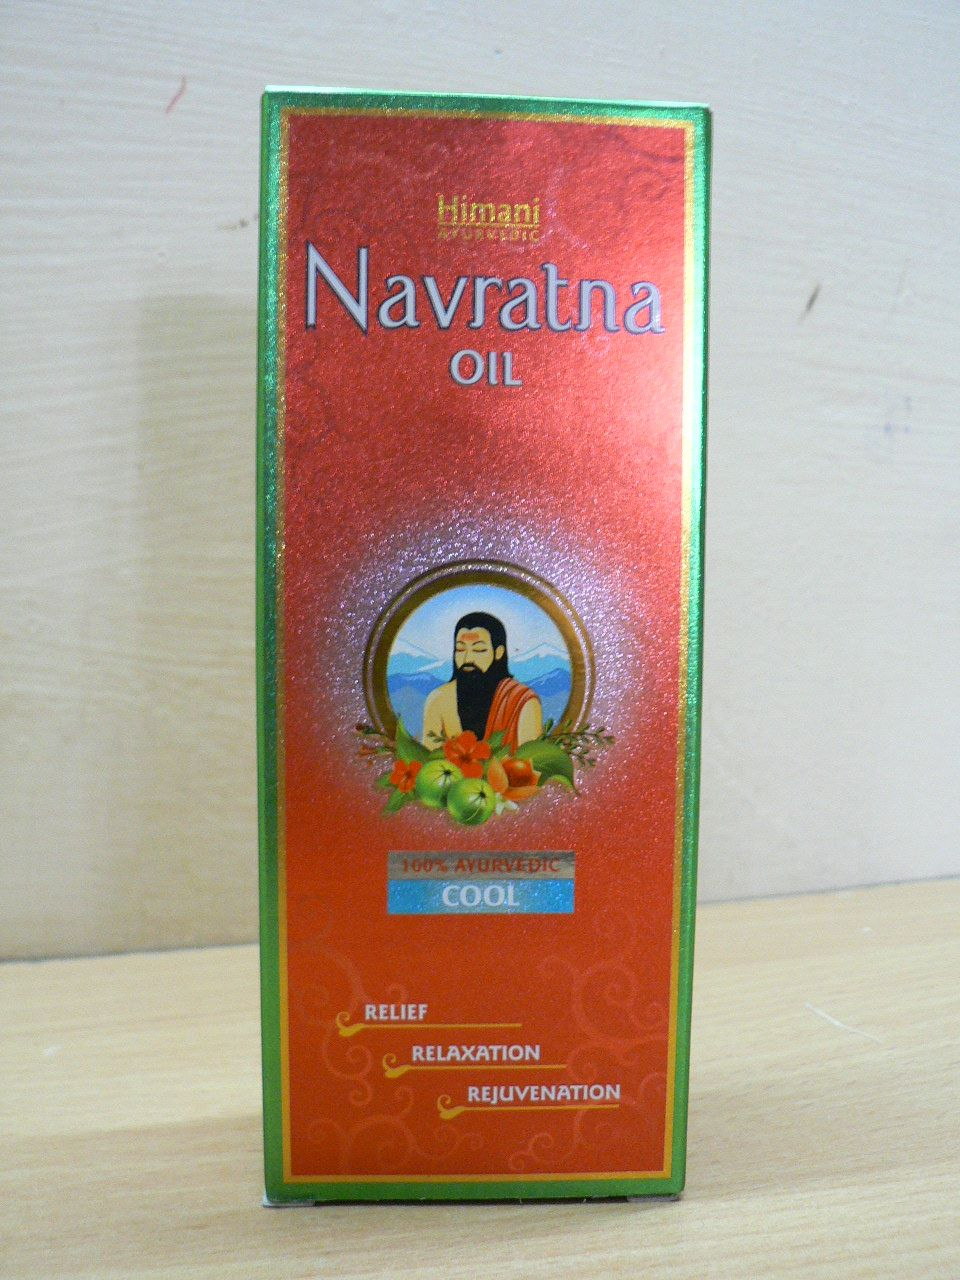 <B>REFRESHING AND COOLING OIL</B><BR>HIMANI NAVRATNA OIL<BR>300 ml